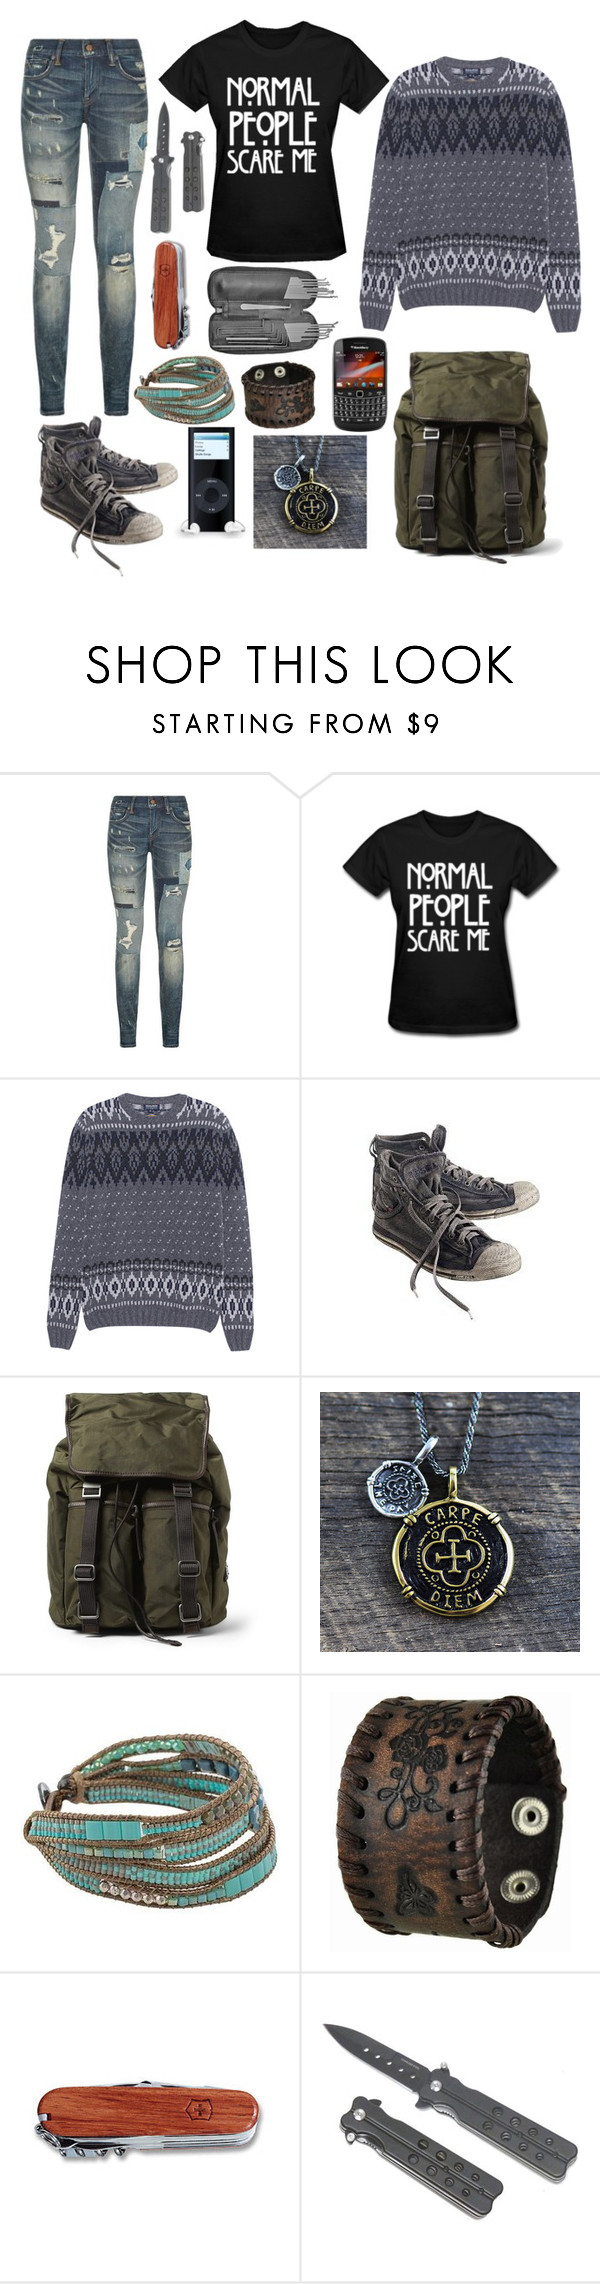 """Untitled #325"" by sammywinchester05 ❤ liked on Polyvore featuring Polo Ralph Lauren, Woolrich, Diesel, Dolce&Gabbana, NOVICA, Nemesis and Victorinox Swiss Army"